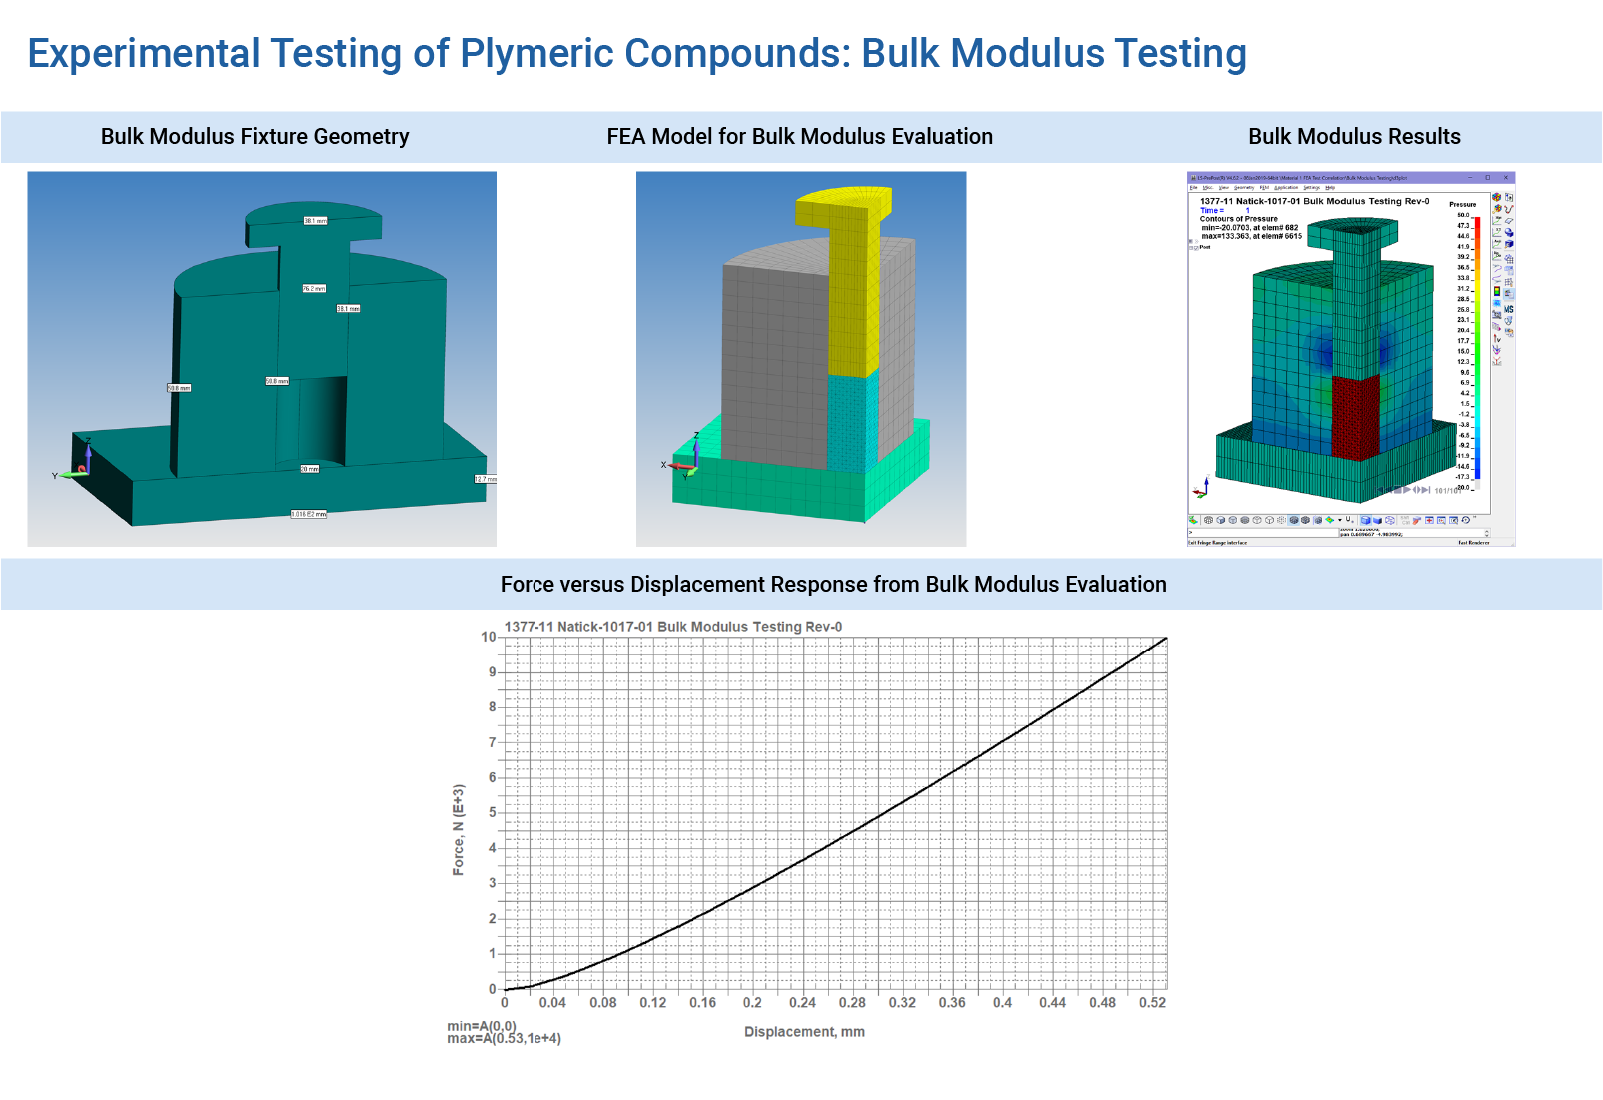 Experimental Testing of Polymeric Compounds - Bulk Modulus Testing to FEA Verification